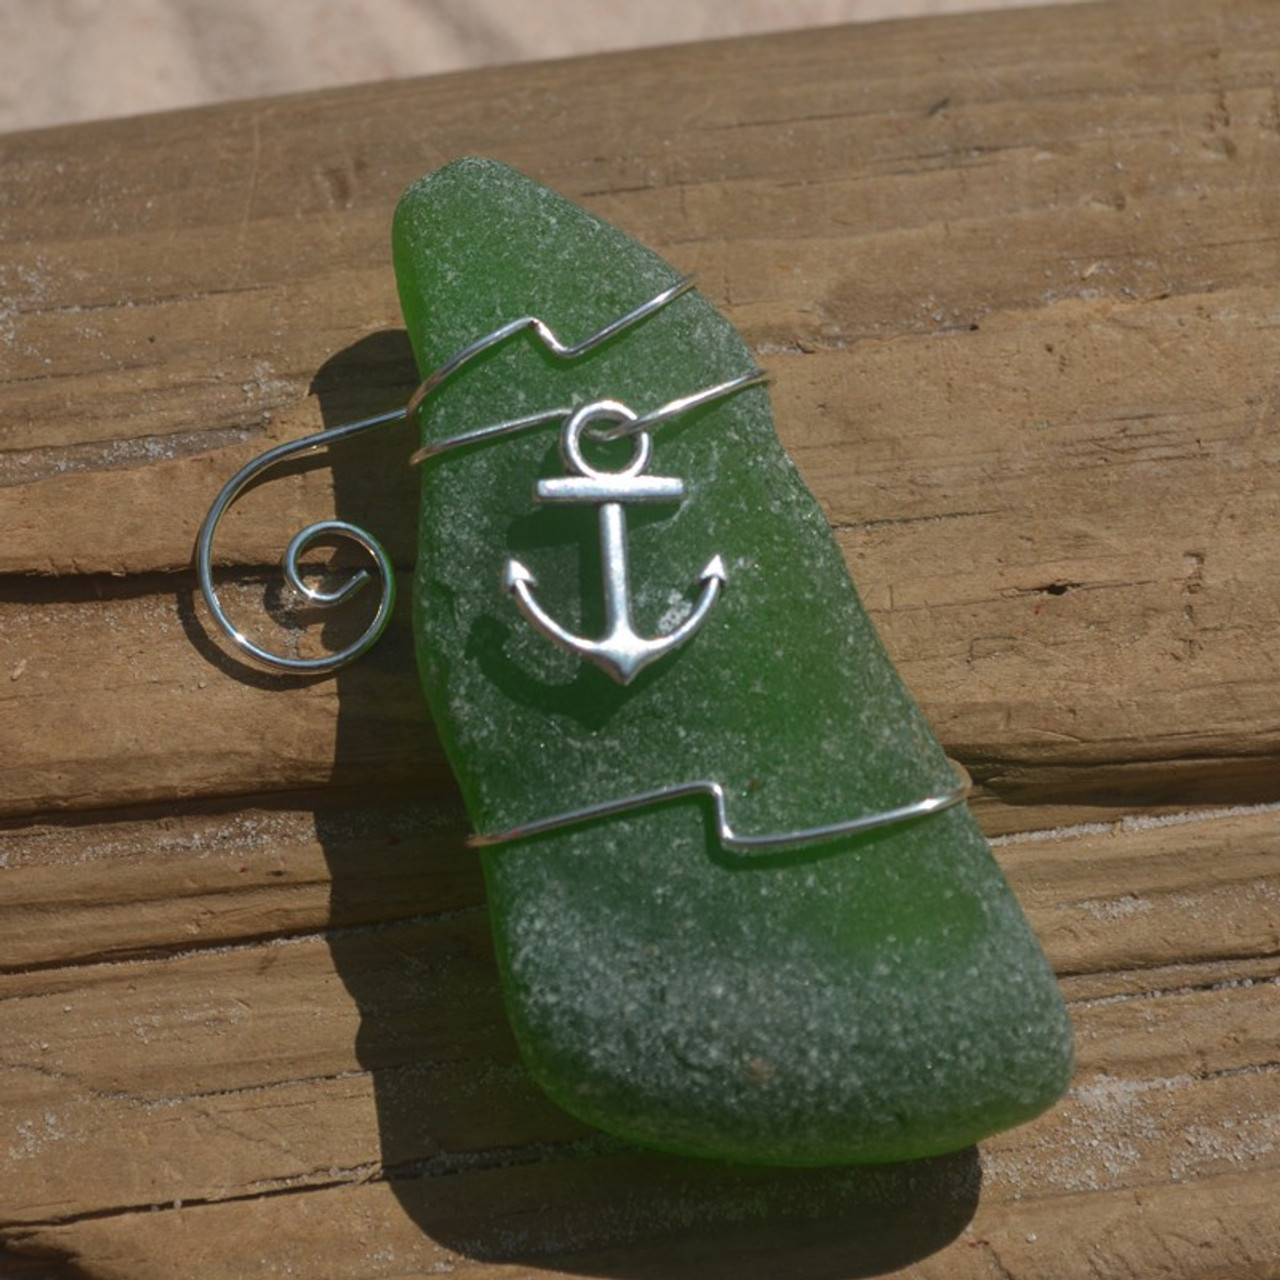 Surf Tumbled Sea Glass Boat Anchor Ornament - Choose Your Color Sea Glass Frosted, Green, and Brown - Made to Order